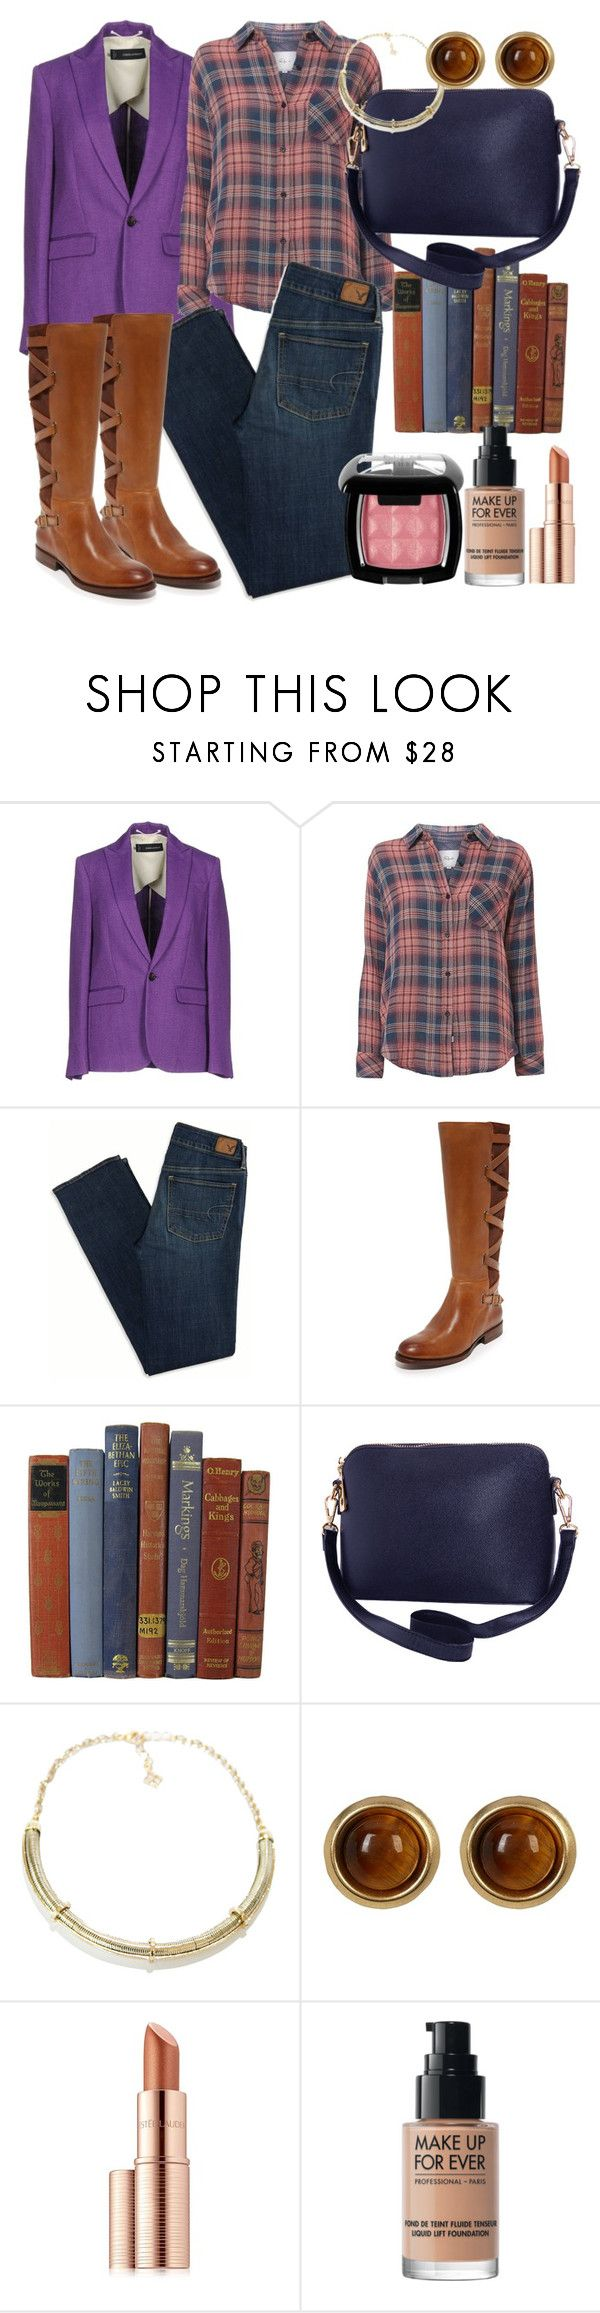 """""""Academic day"""" by francymayoli ❤ liked on Polyvore featuring Dsquared2, Rails, American Eagle Outfitters, Frye, Humble Chic, BCBGMAXAZRIA, House of Harlow 1960, Estée Lauder, MAKE UP FOR EVER and NYX"""